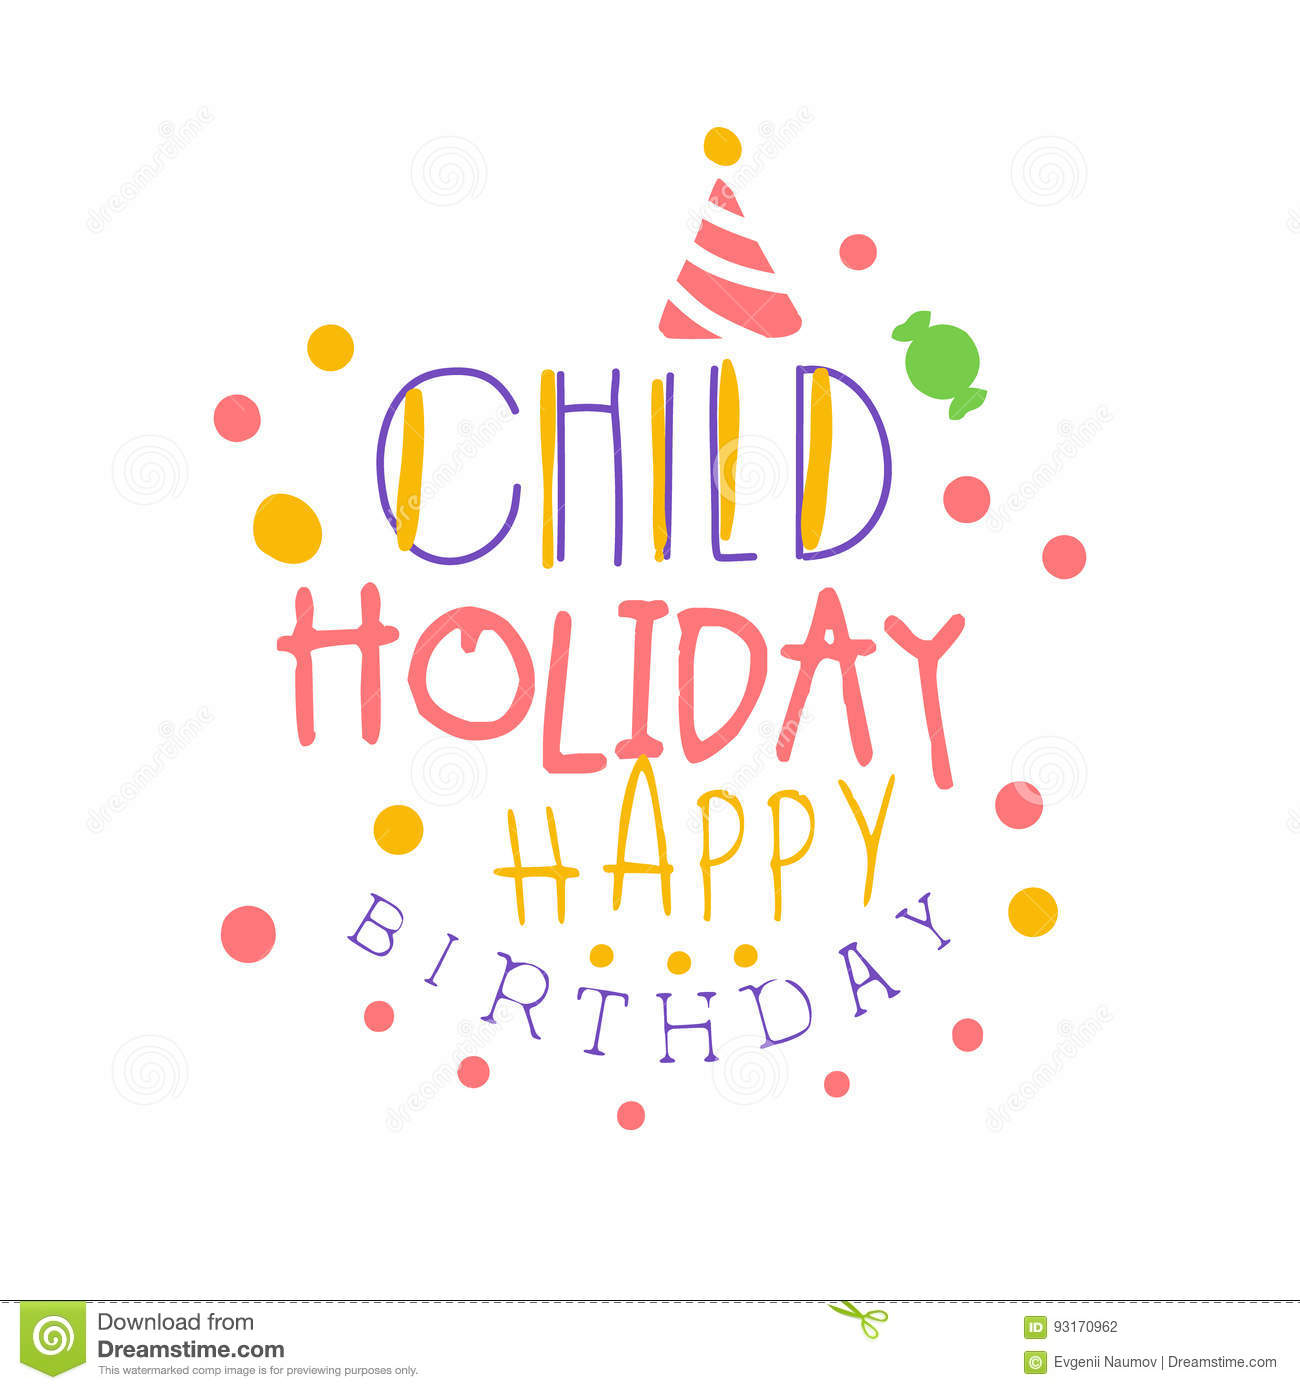 Child holiday happy birthday promo sign childrens party colorful download child holiday happy birthday promo sign childrens party colorful hand drawn vector illustration stock stopboris Image collections